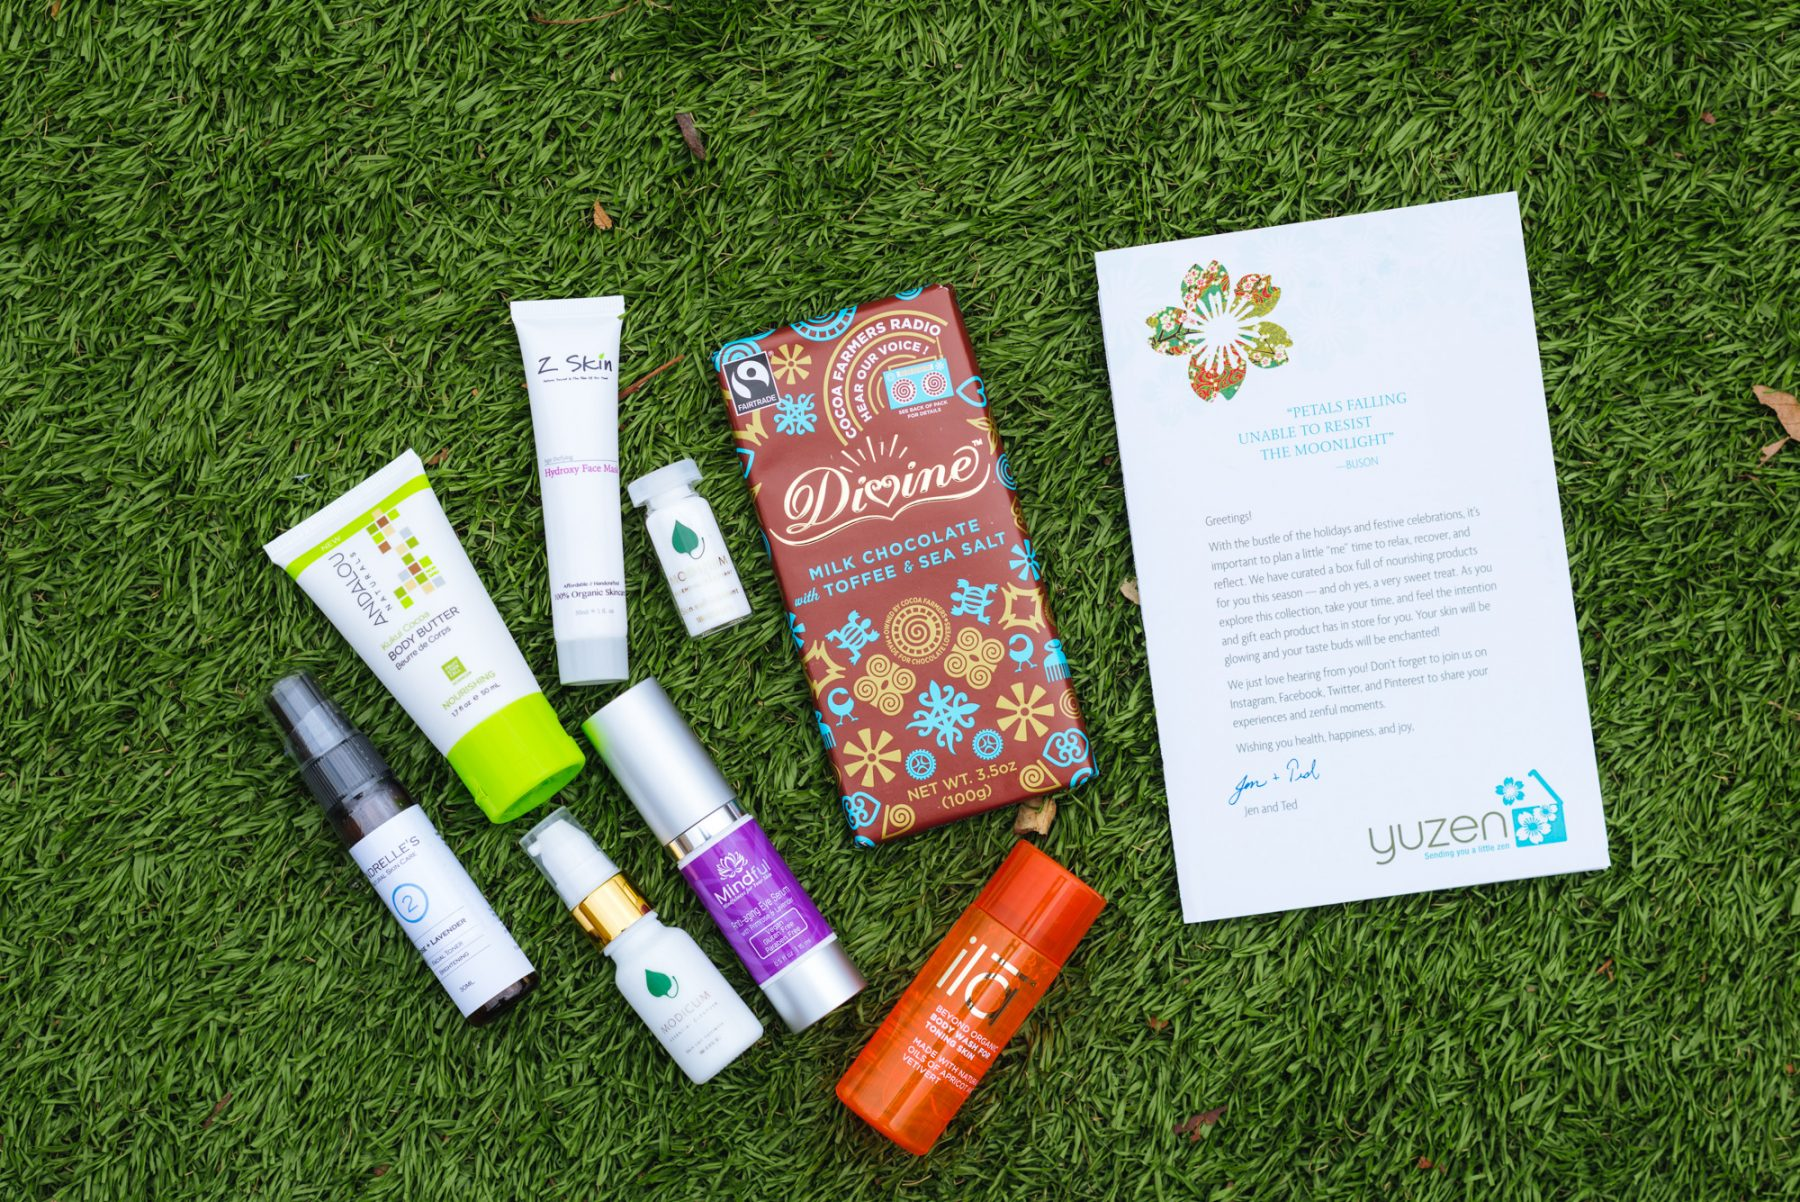 Eco Friendly Spa Products – Yuzen Box